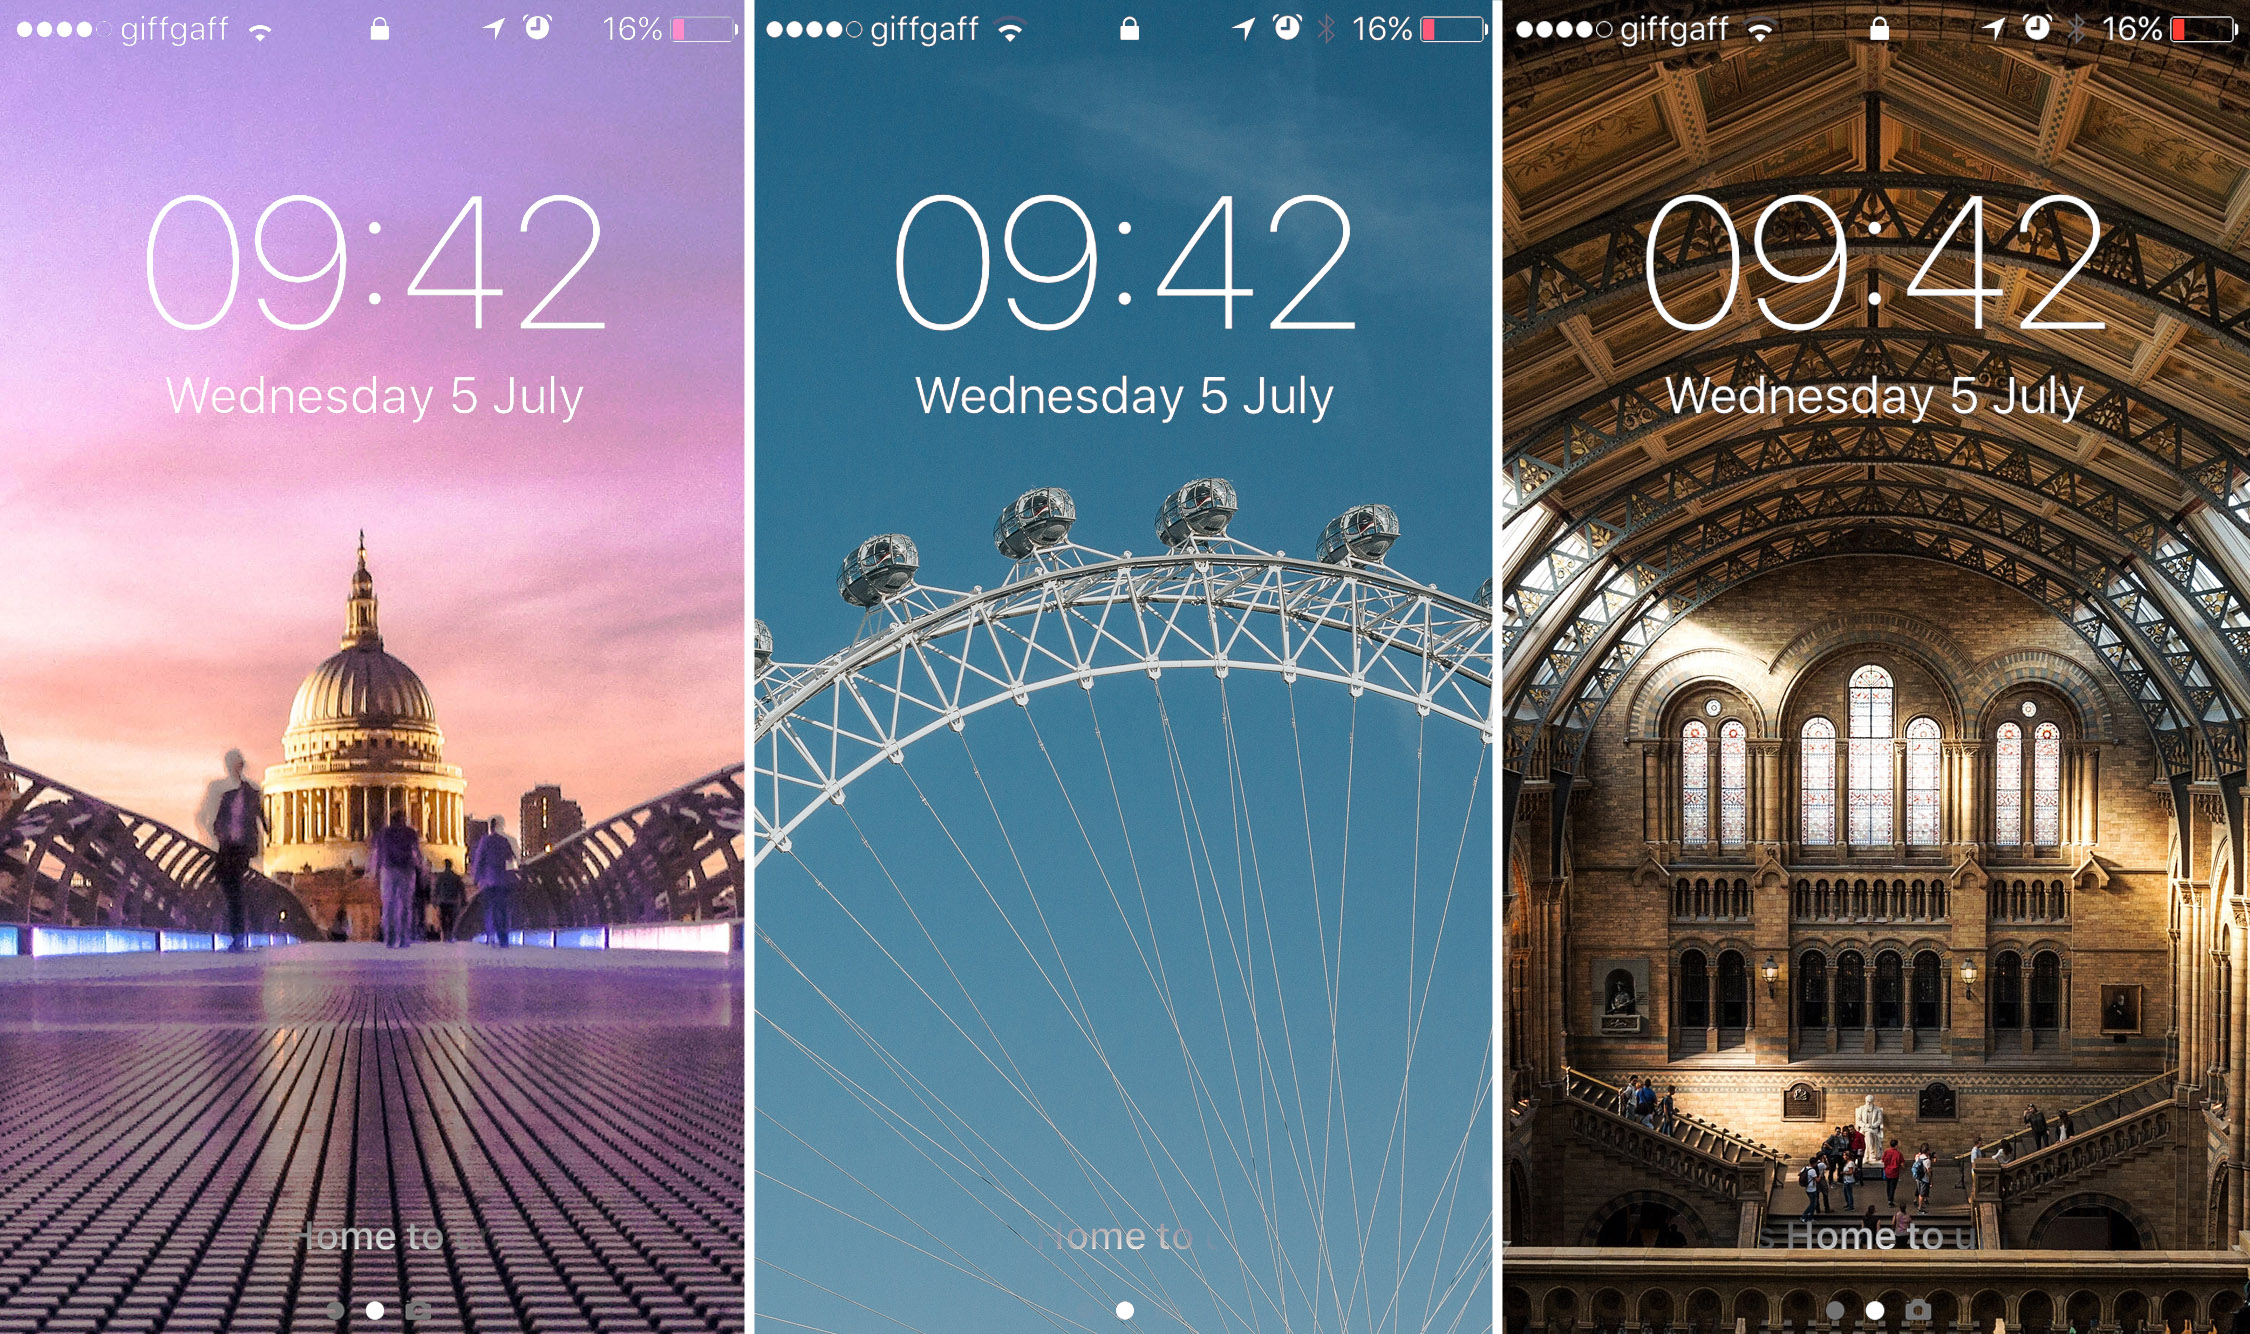 Free Wallpaper Downloads Download 23 Free Hd Phone Wallpaper Photos With A London Theme